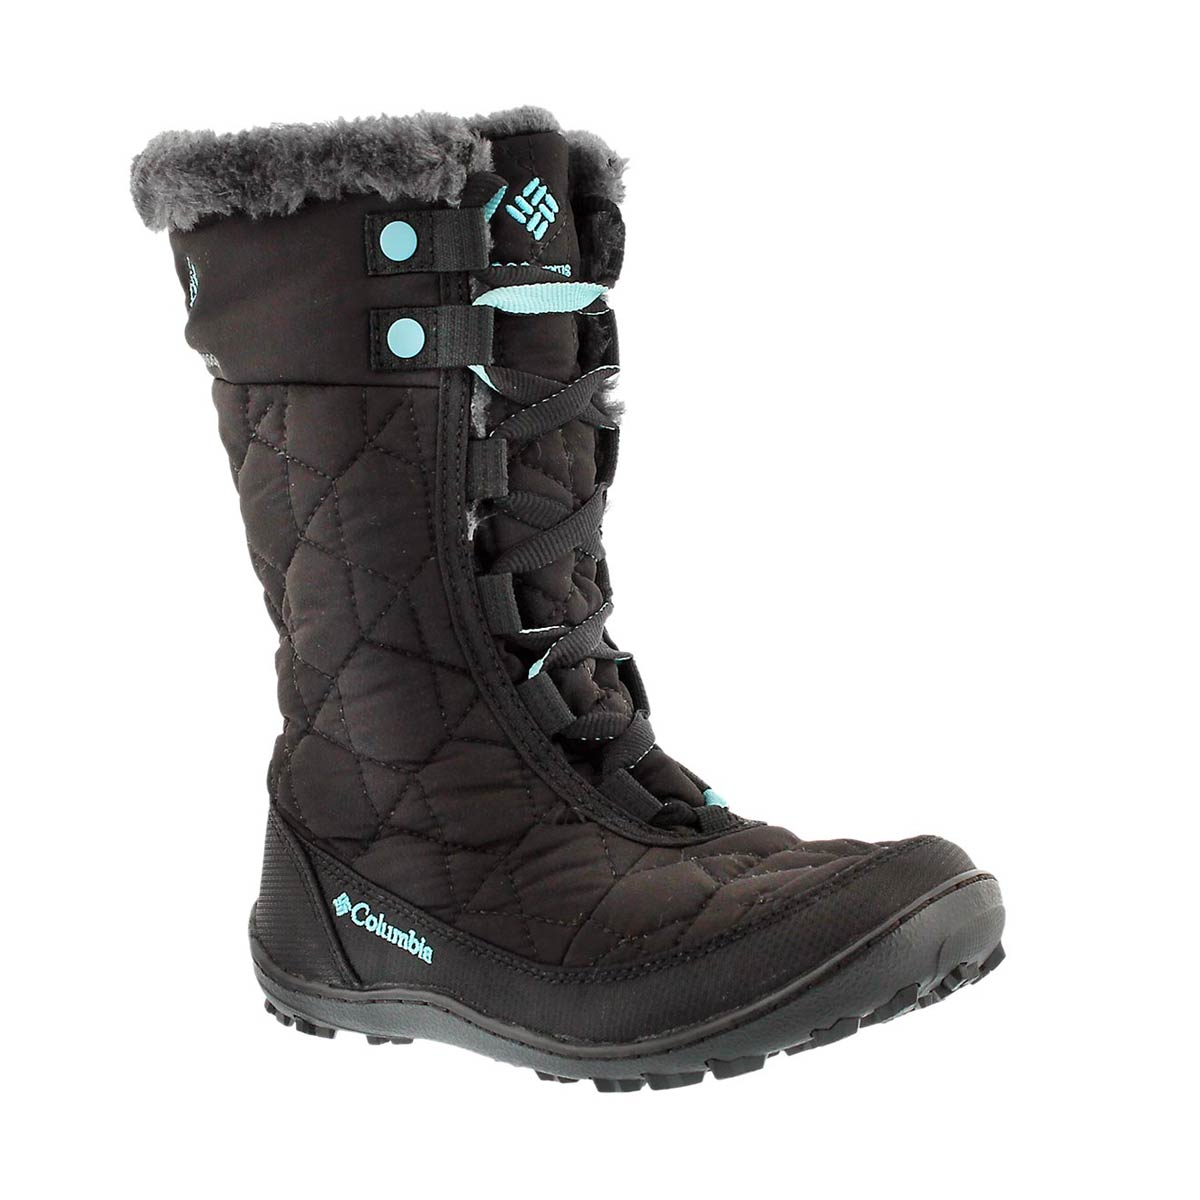 Womens Columbia Winter Boots Sale | NATIONAL SHERIFFS' ASSOCIATION